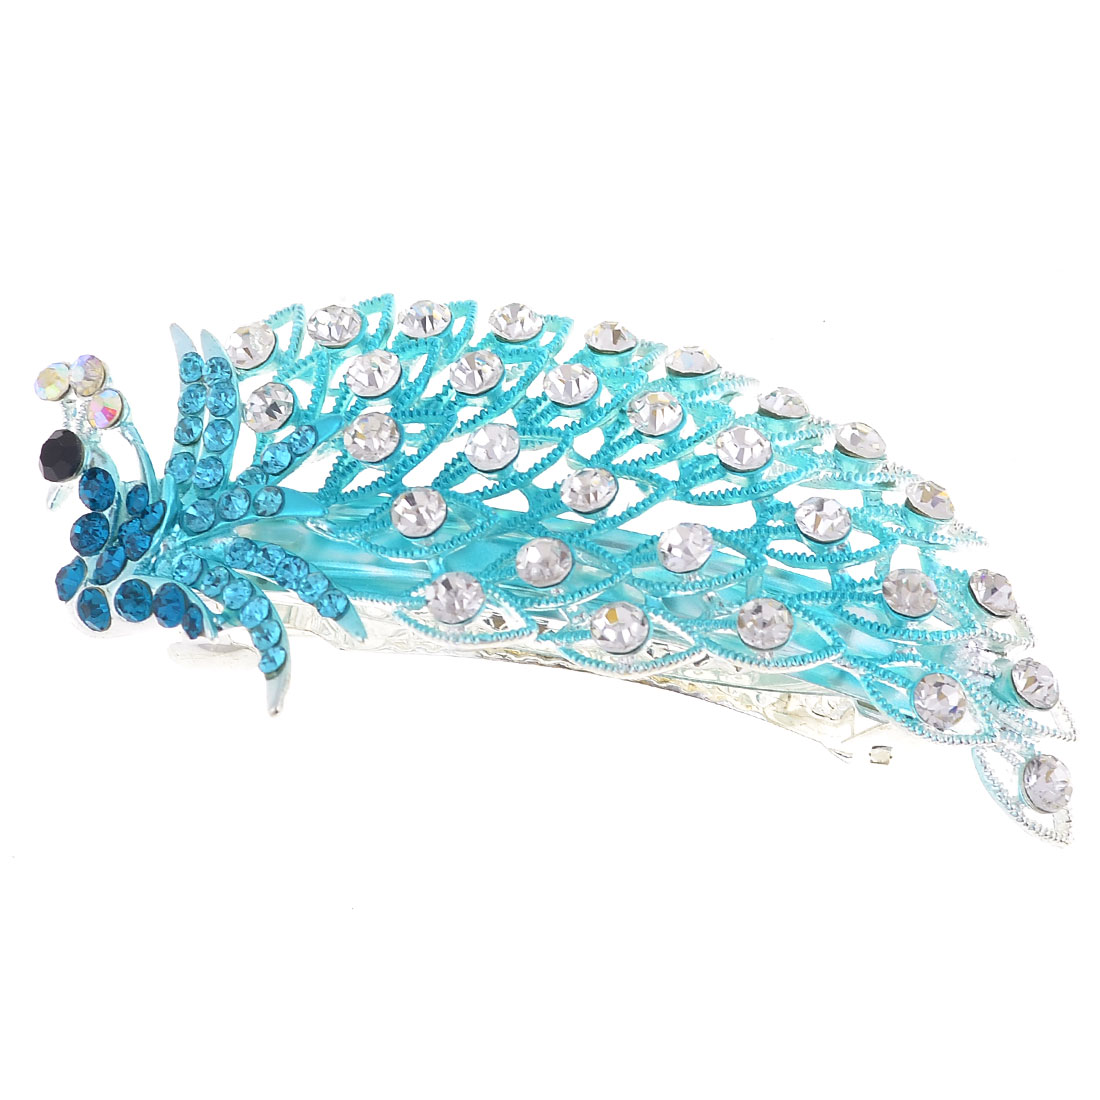 Teal Blue Shinny Rhinestone Inlaying Peacock Shaped Metal French Clip